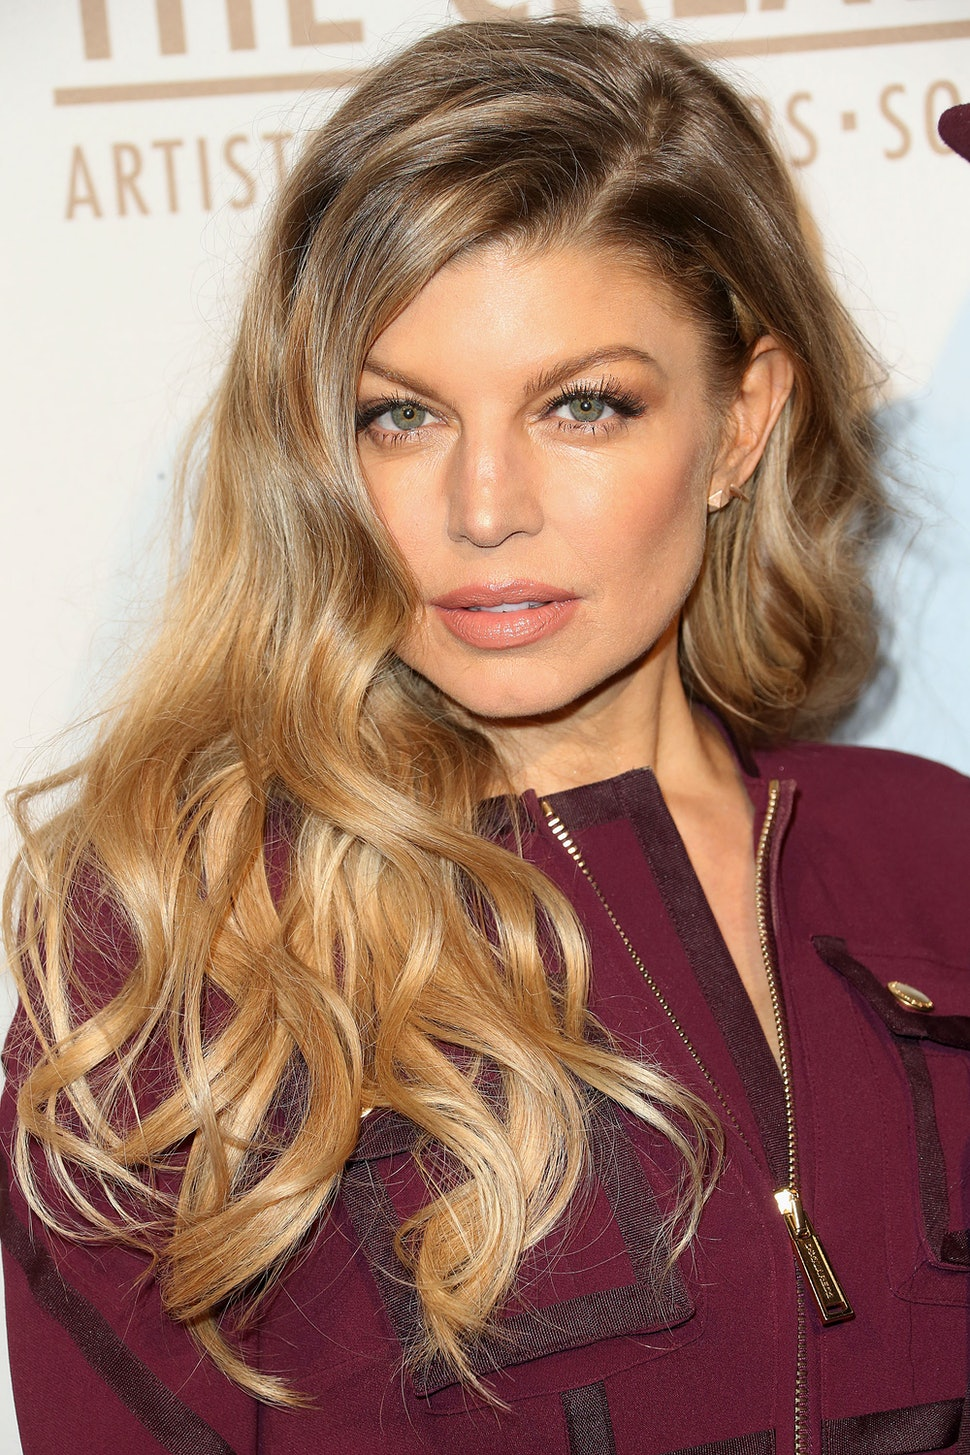 Fergie S Lob Haircut Is Her Most Dramatic Change Up Yet Photos